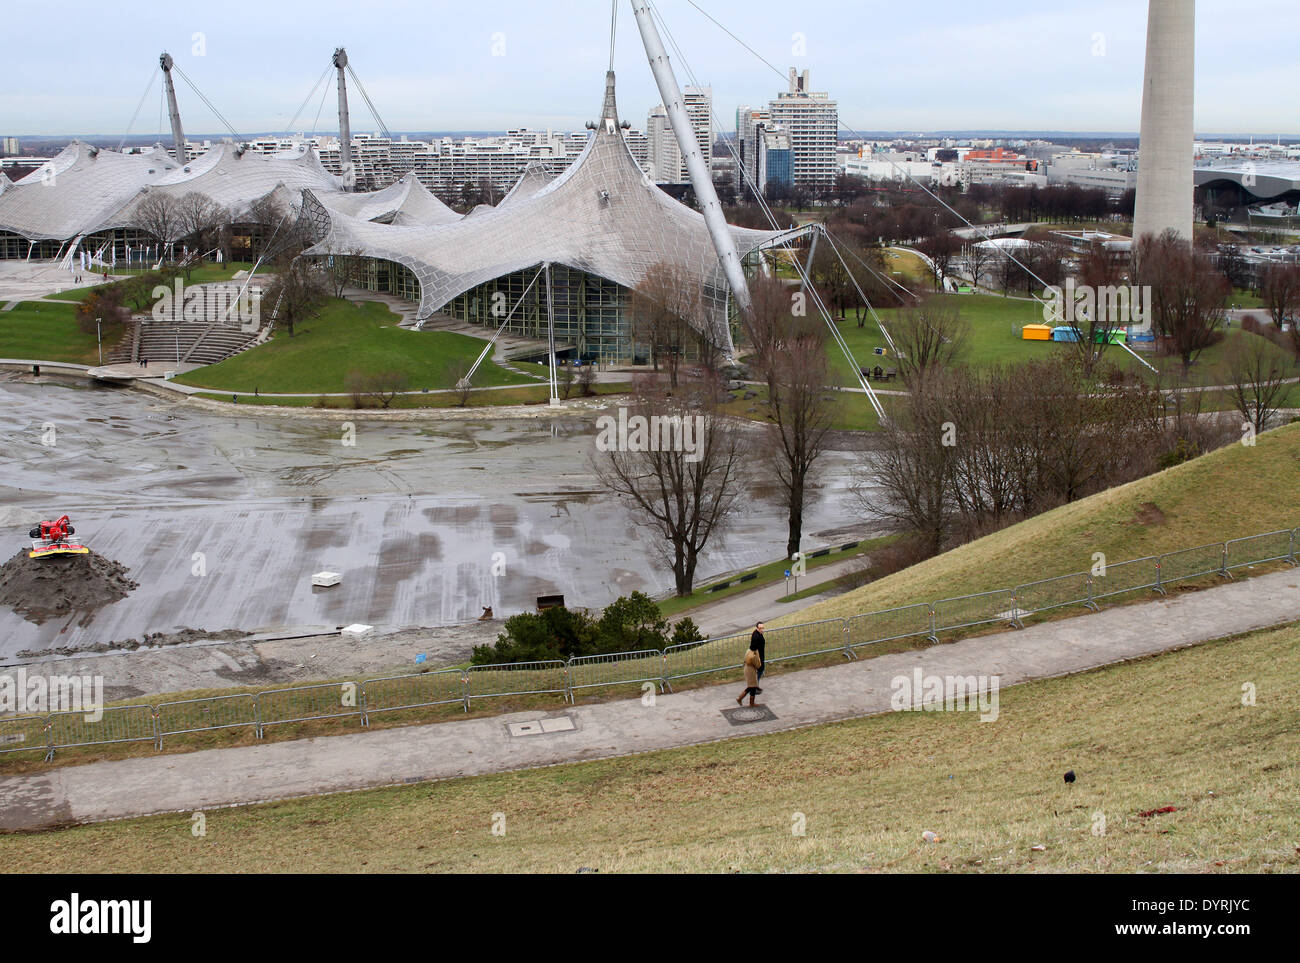 The FIS Alpine Ski World Cup cancelled in the Olympiapark in Munich, 2012 Stock Photo